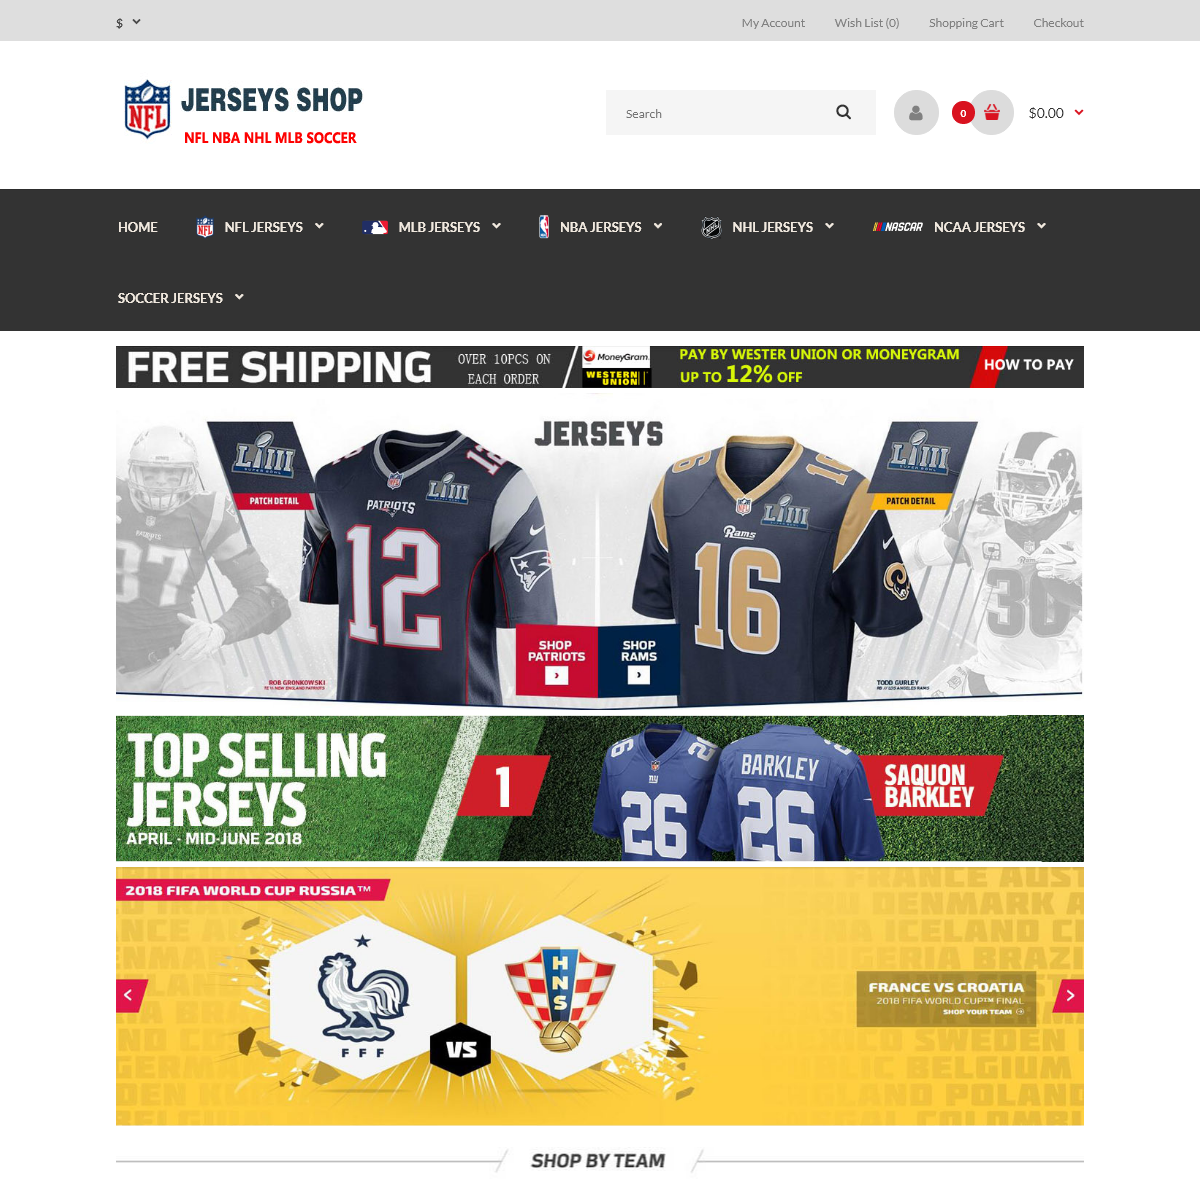 Cheap NFL Jerseys , 100- Stitched NFL Jerseys Free Shipping